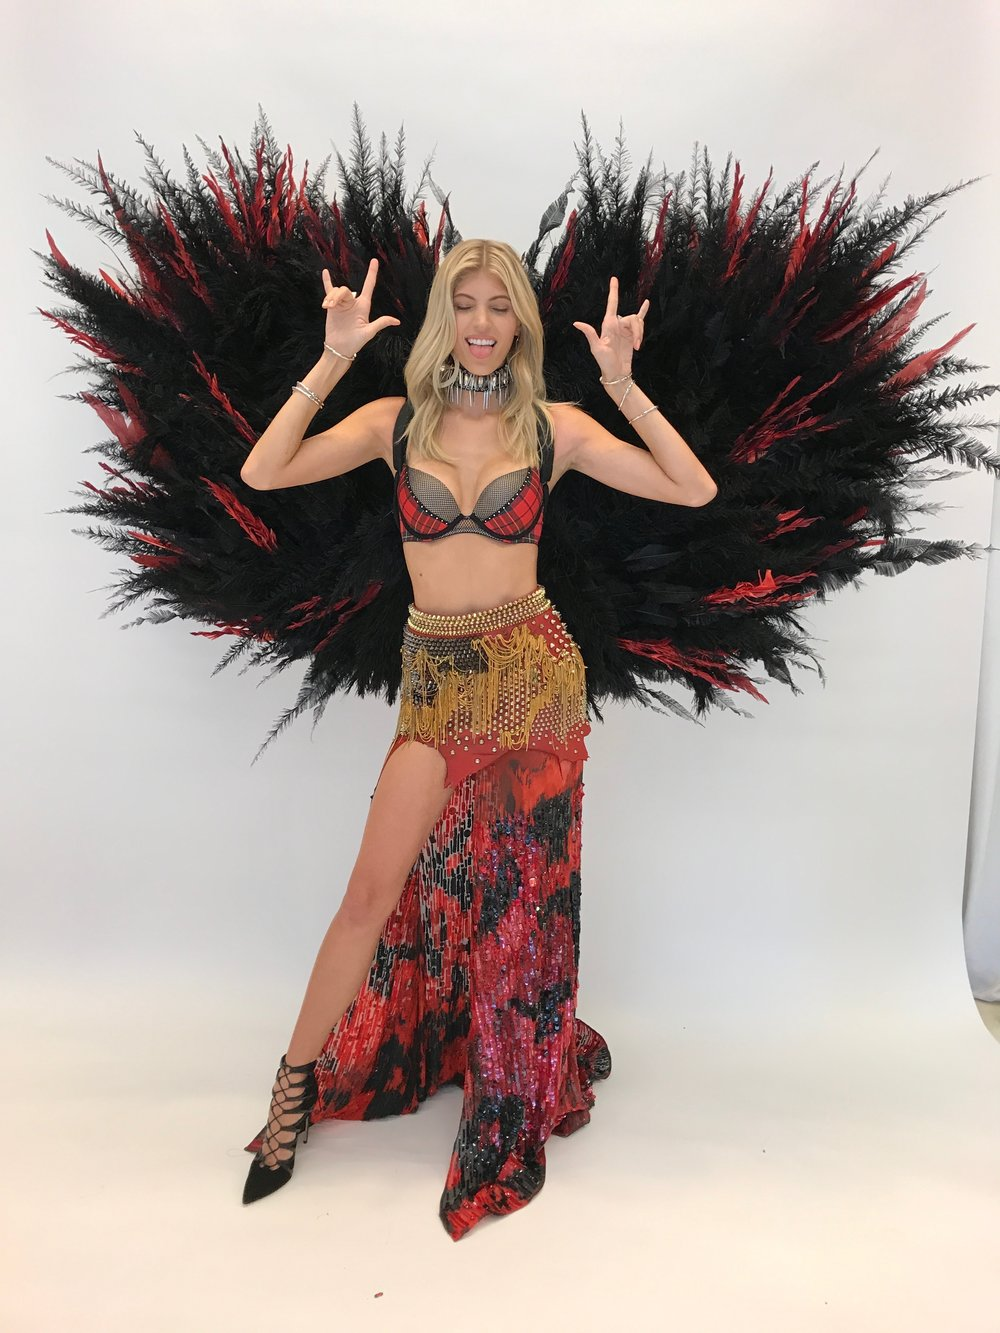 Victoria's Secret Fashion Show, Victoria's Secret, Shanghai 2017, Devon Windsor, Victoria's Secret Angels, Wings, Victoria's Secret Fittings, Punk Angels